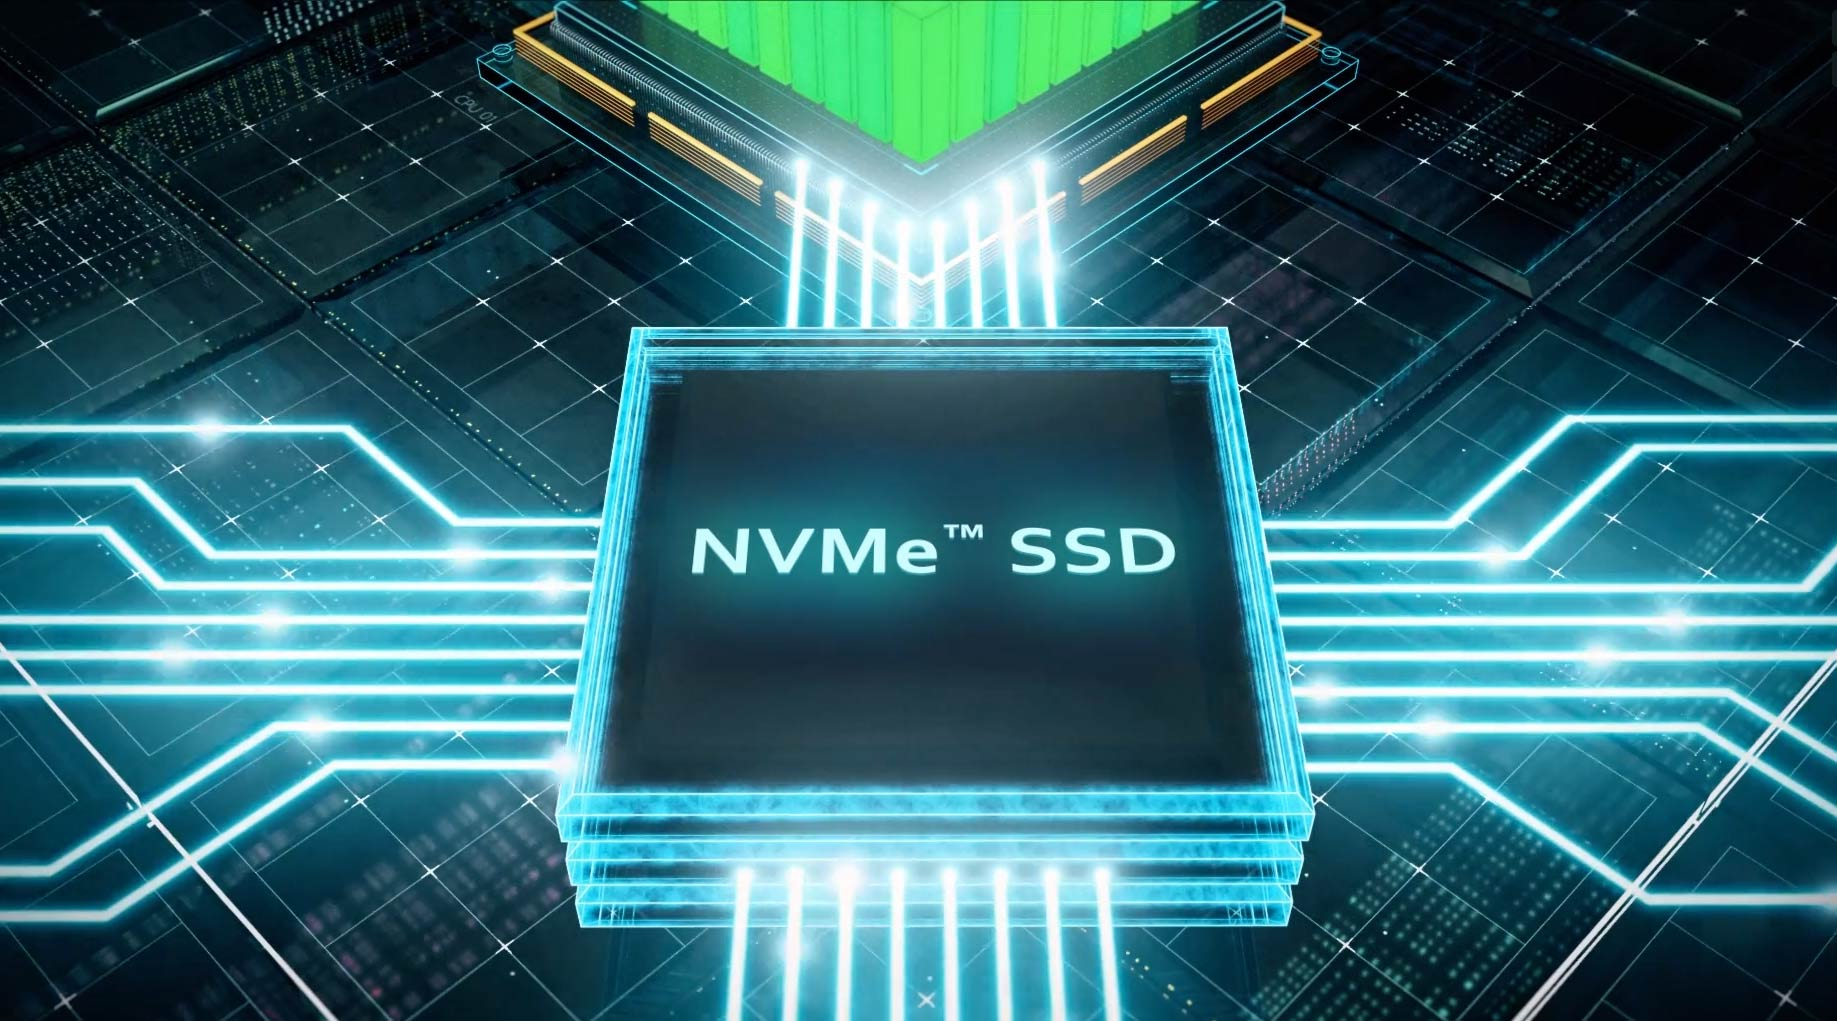 Making Data Thrive with NVMe™